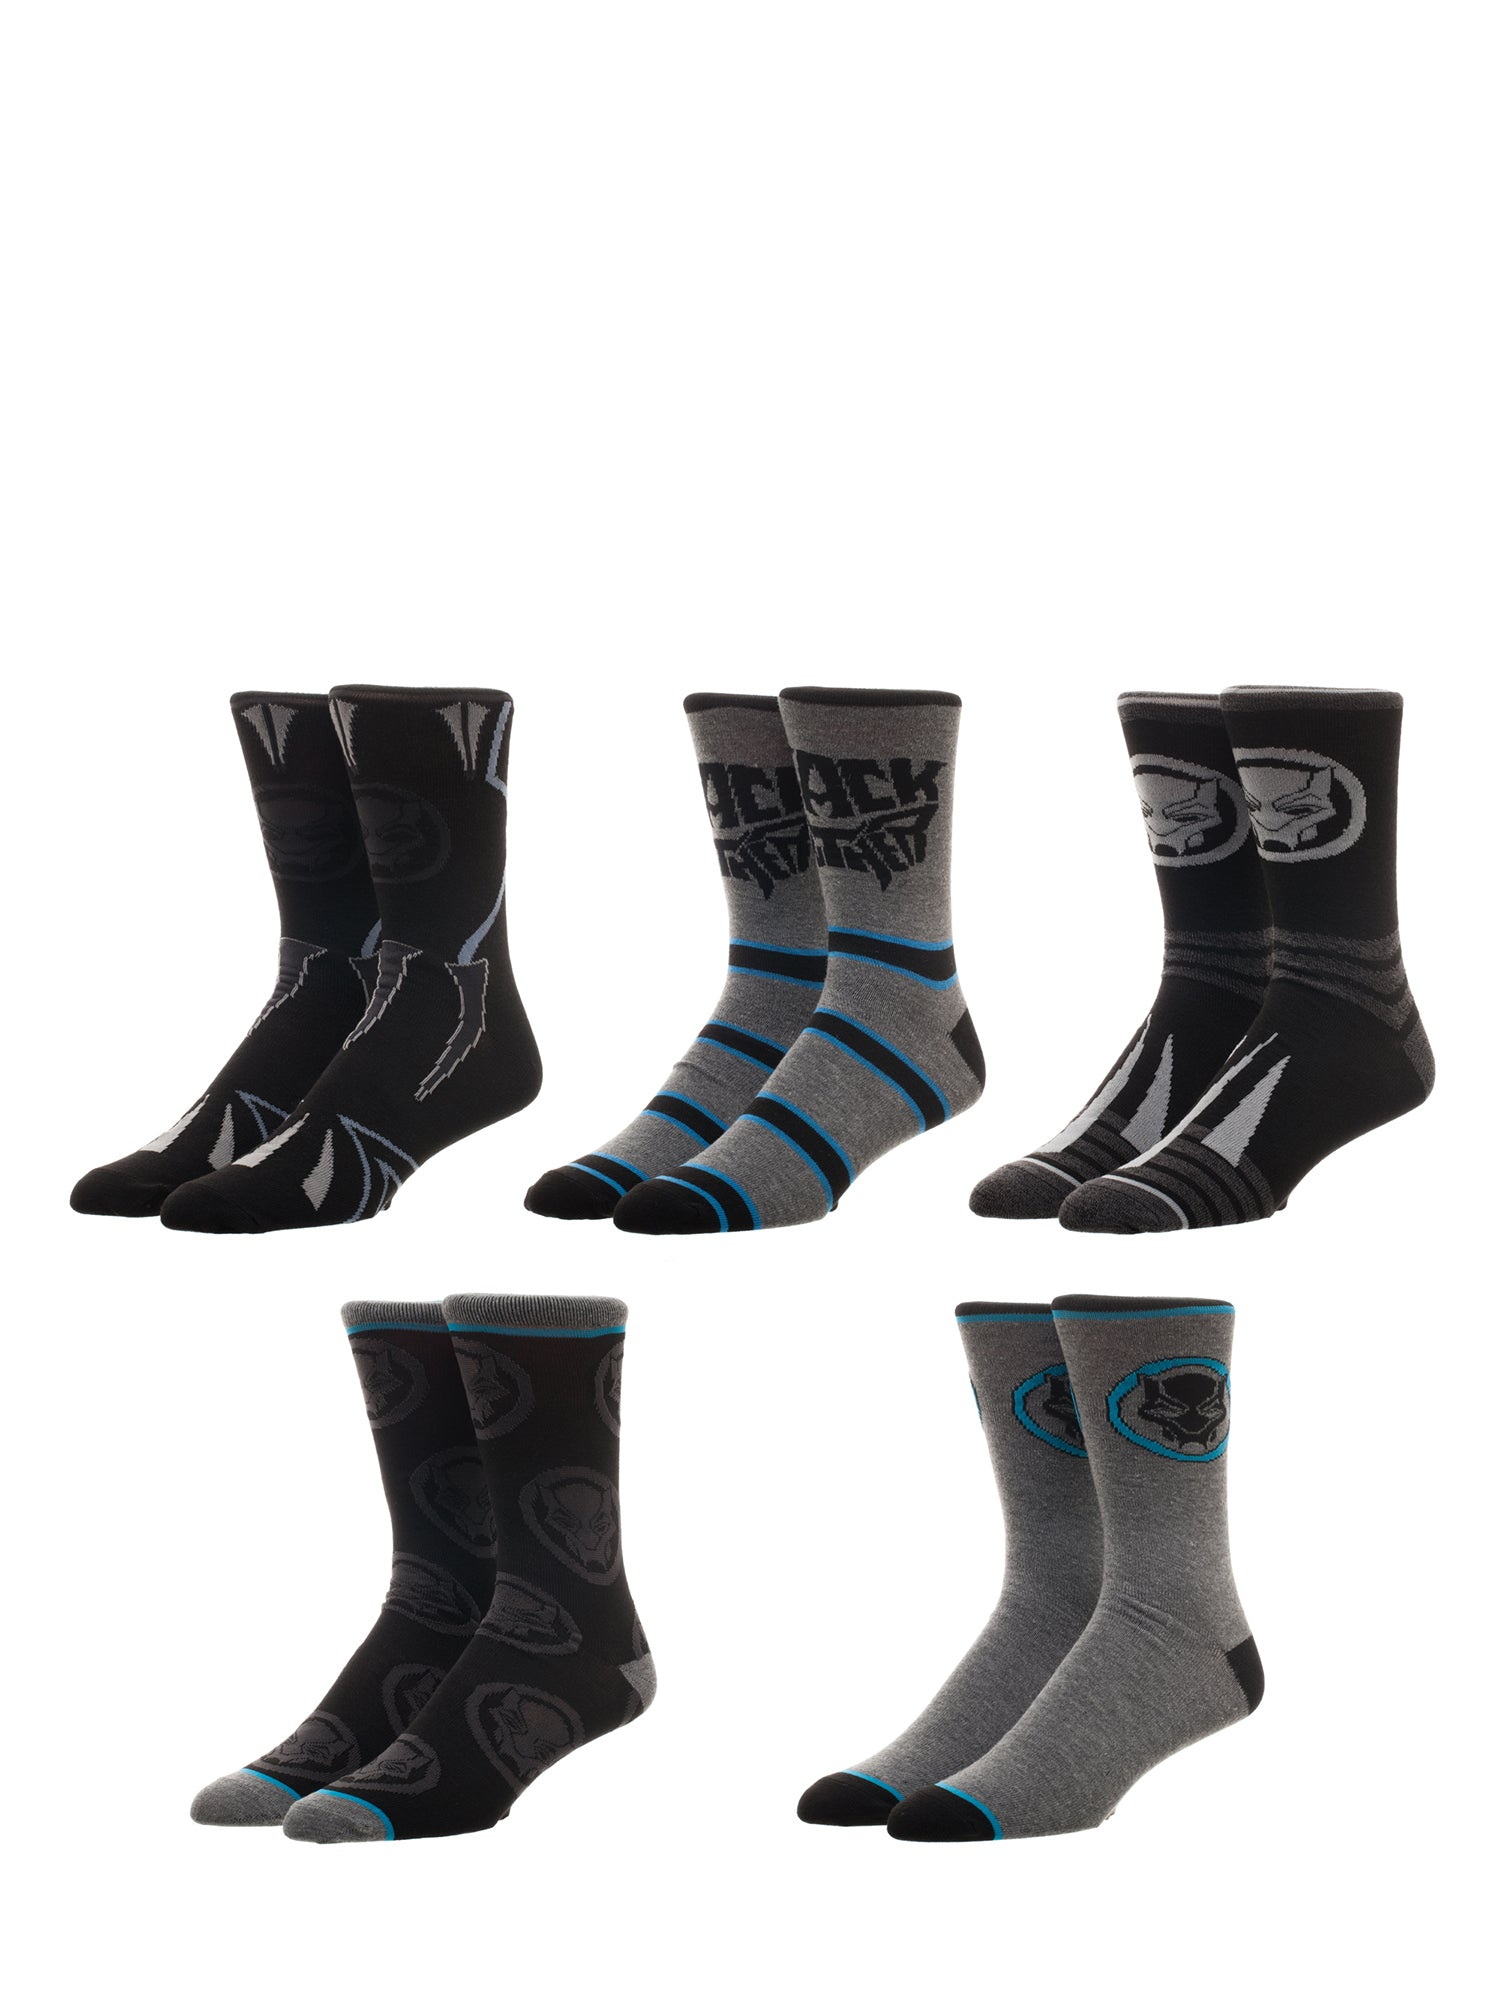 Marvel Black Panther 5 Pair Pack Casual Crew Socks